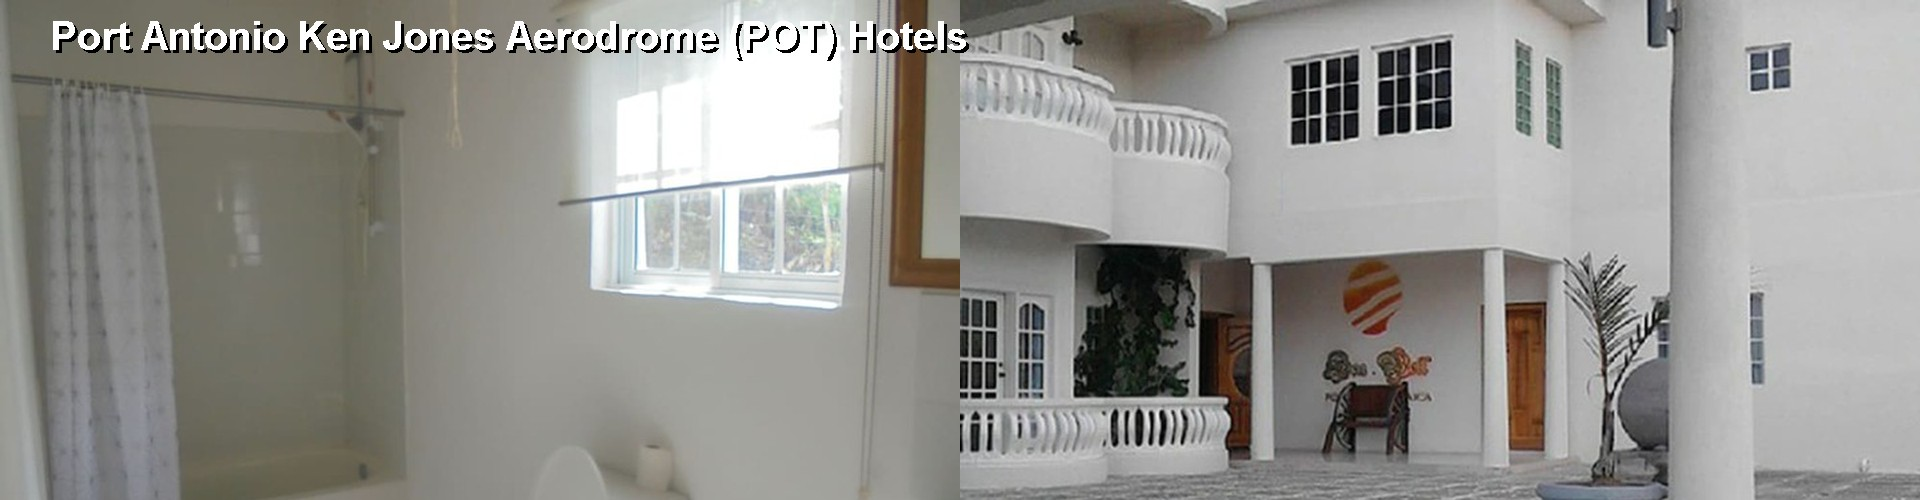 5 Best Hotels near Port Antonio Ken Jones Aerodrome (POT)